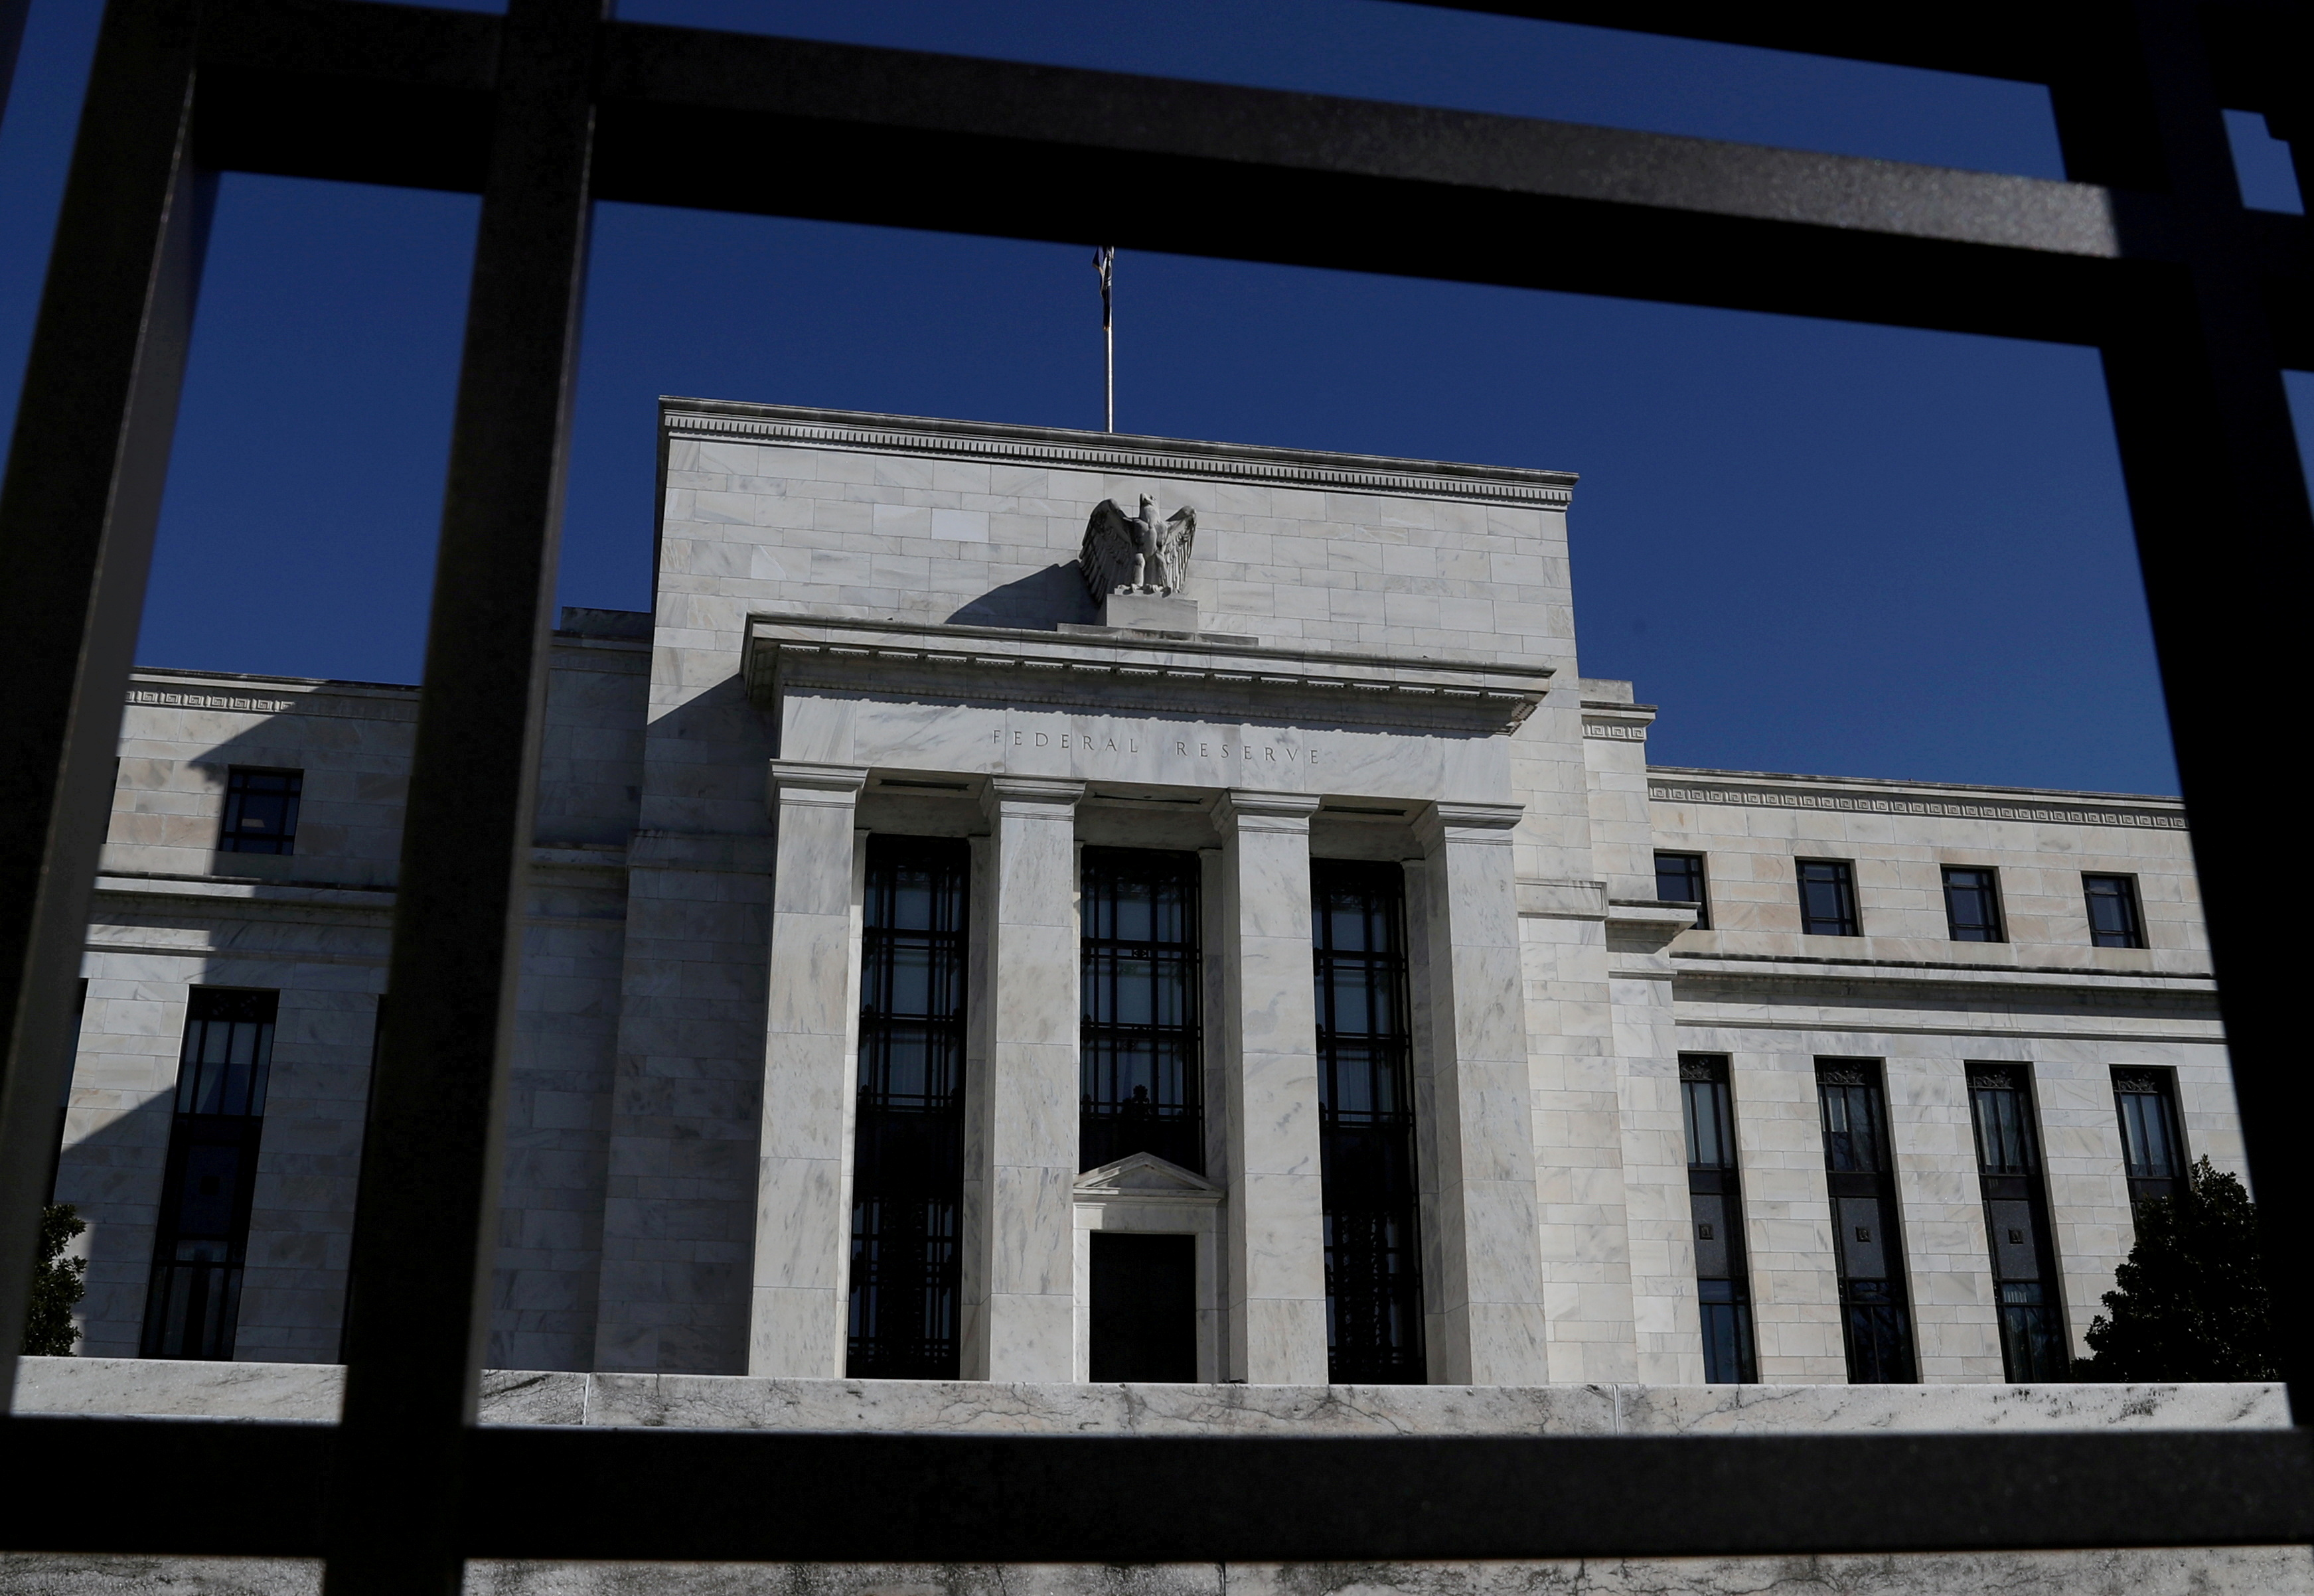 Federal Reserve Board building is pictured in Washington, U.S., March 19, 2019. REUTERS/Leah Millis/File Photo